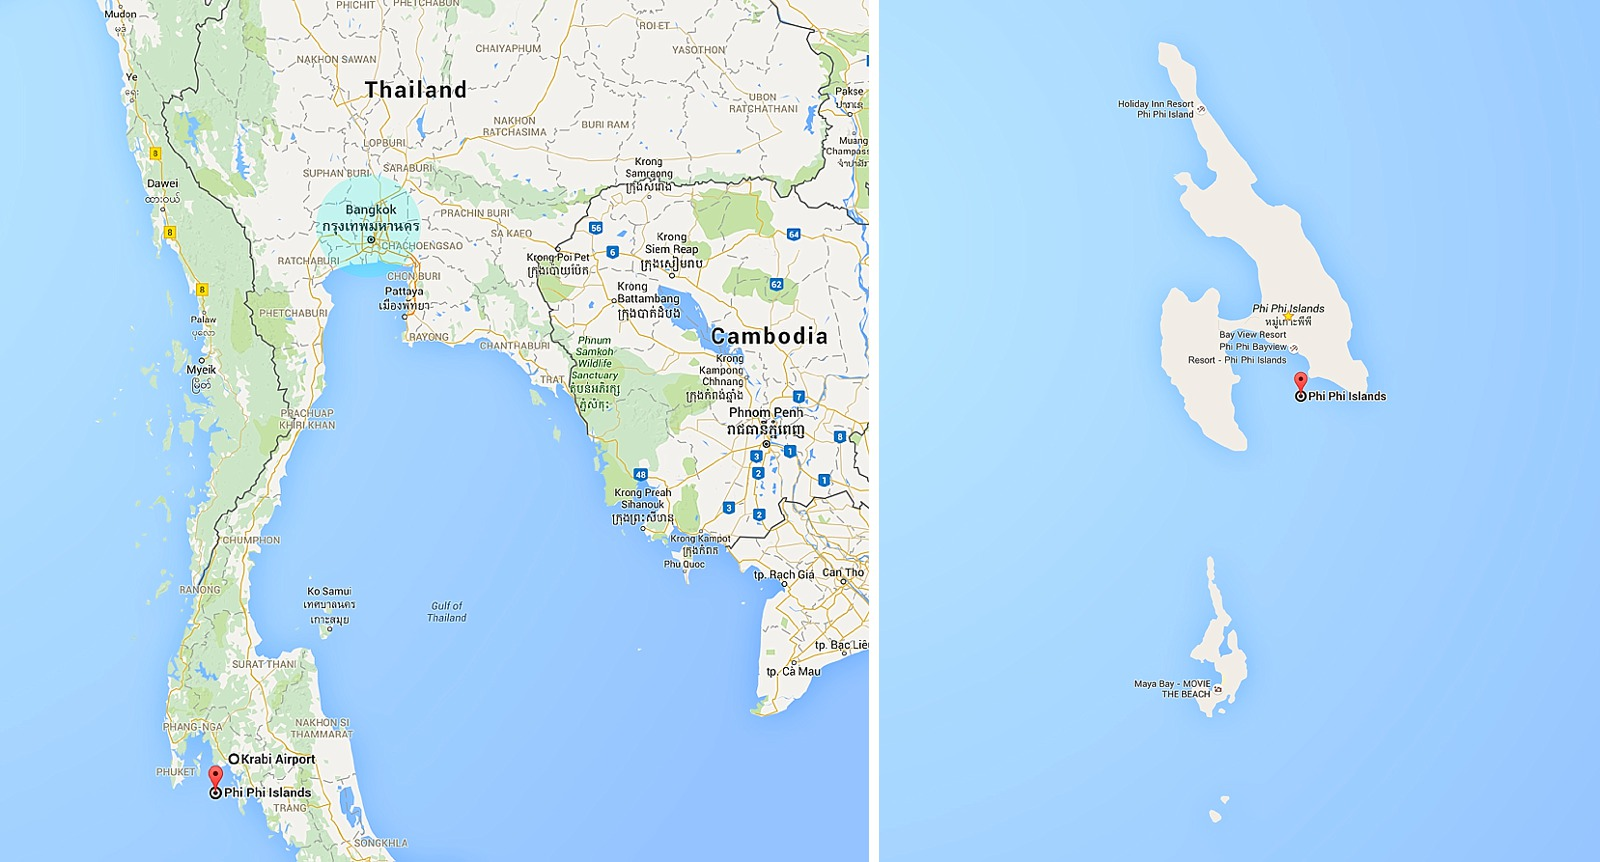 map of Thailand phi phi islands to show where they are located and where to stay and go